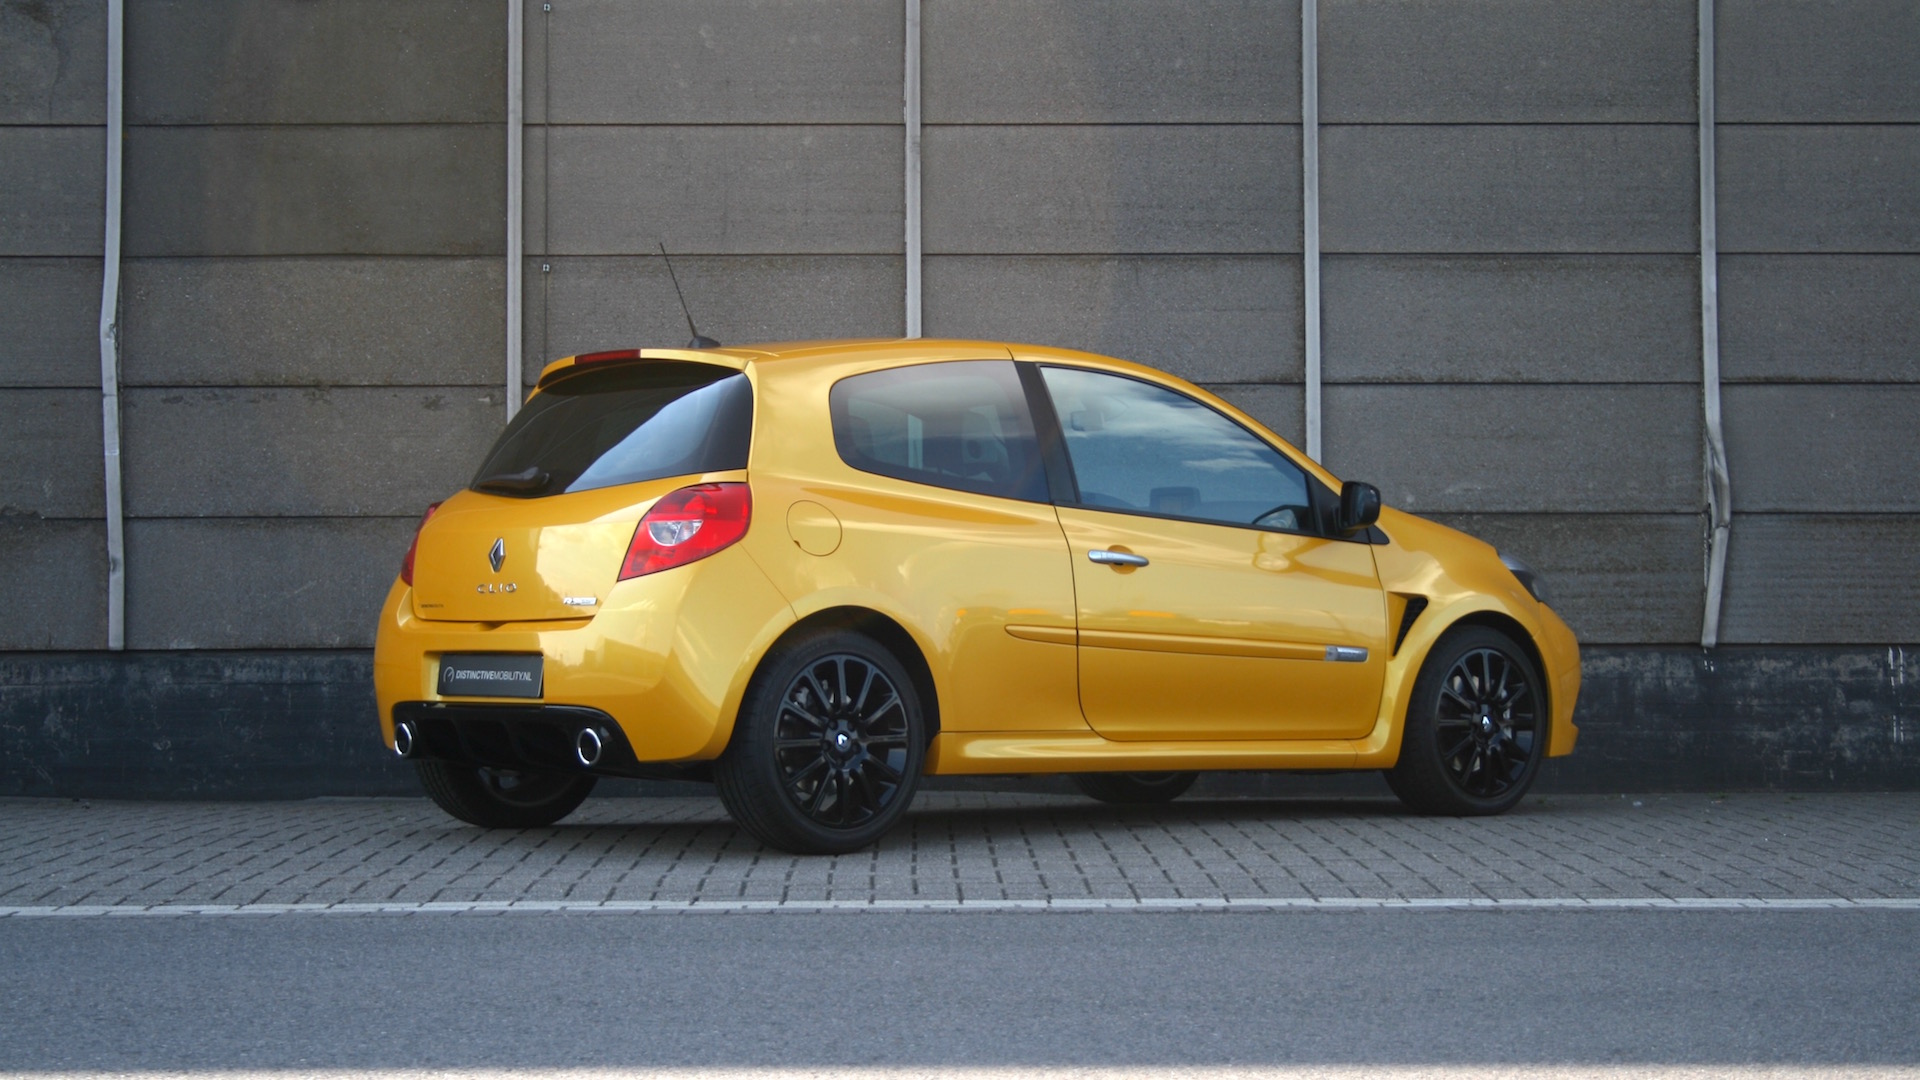 renault clio rs 200 2 0 16v distinctive mobility. Black Bedroom Furniture Sets. Home Design Ideas